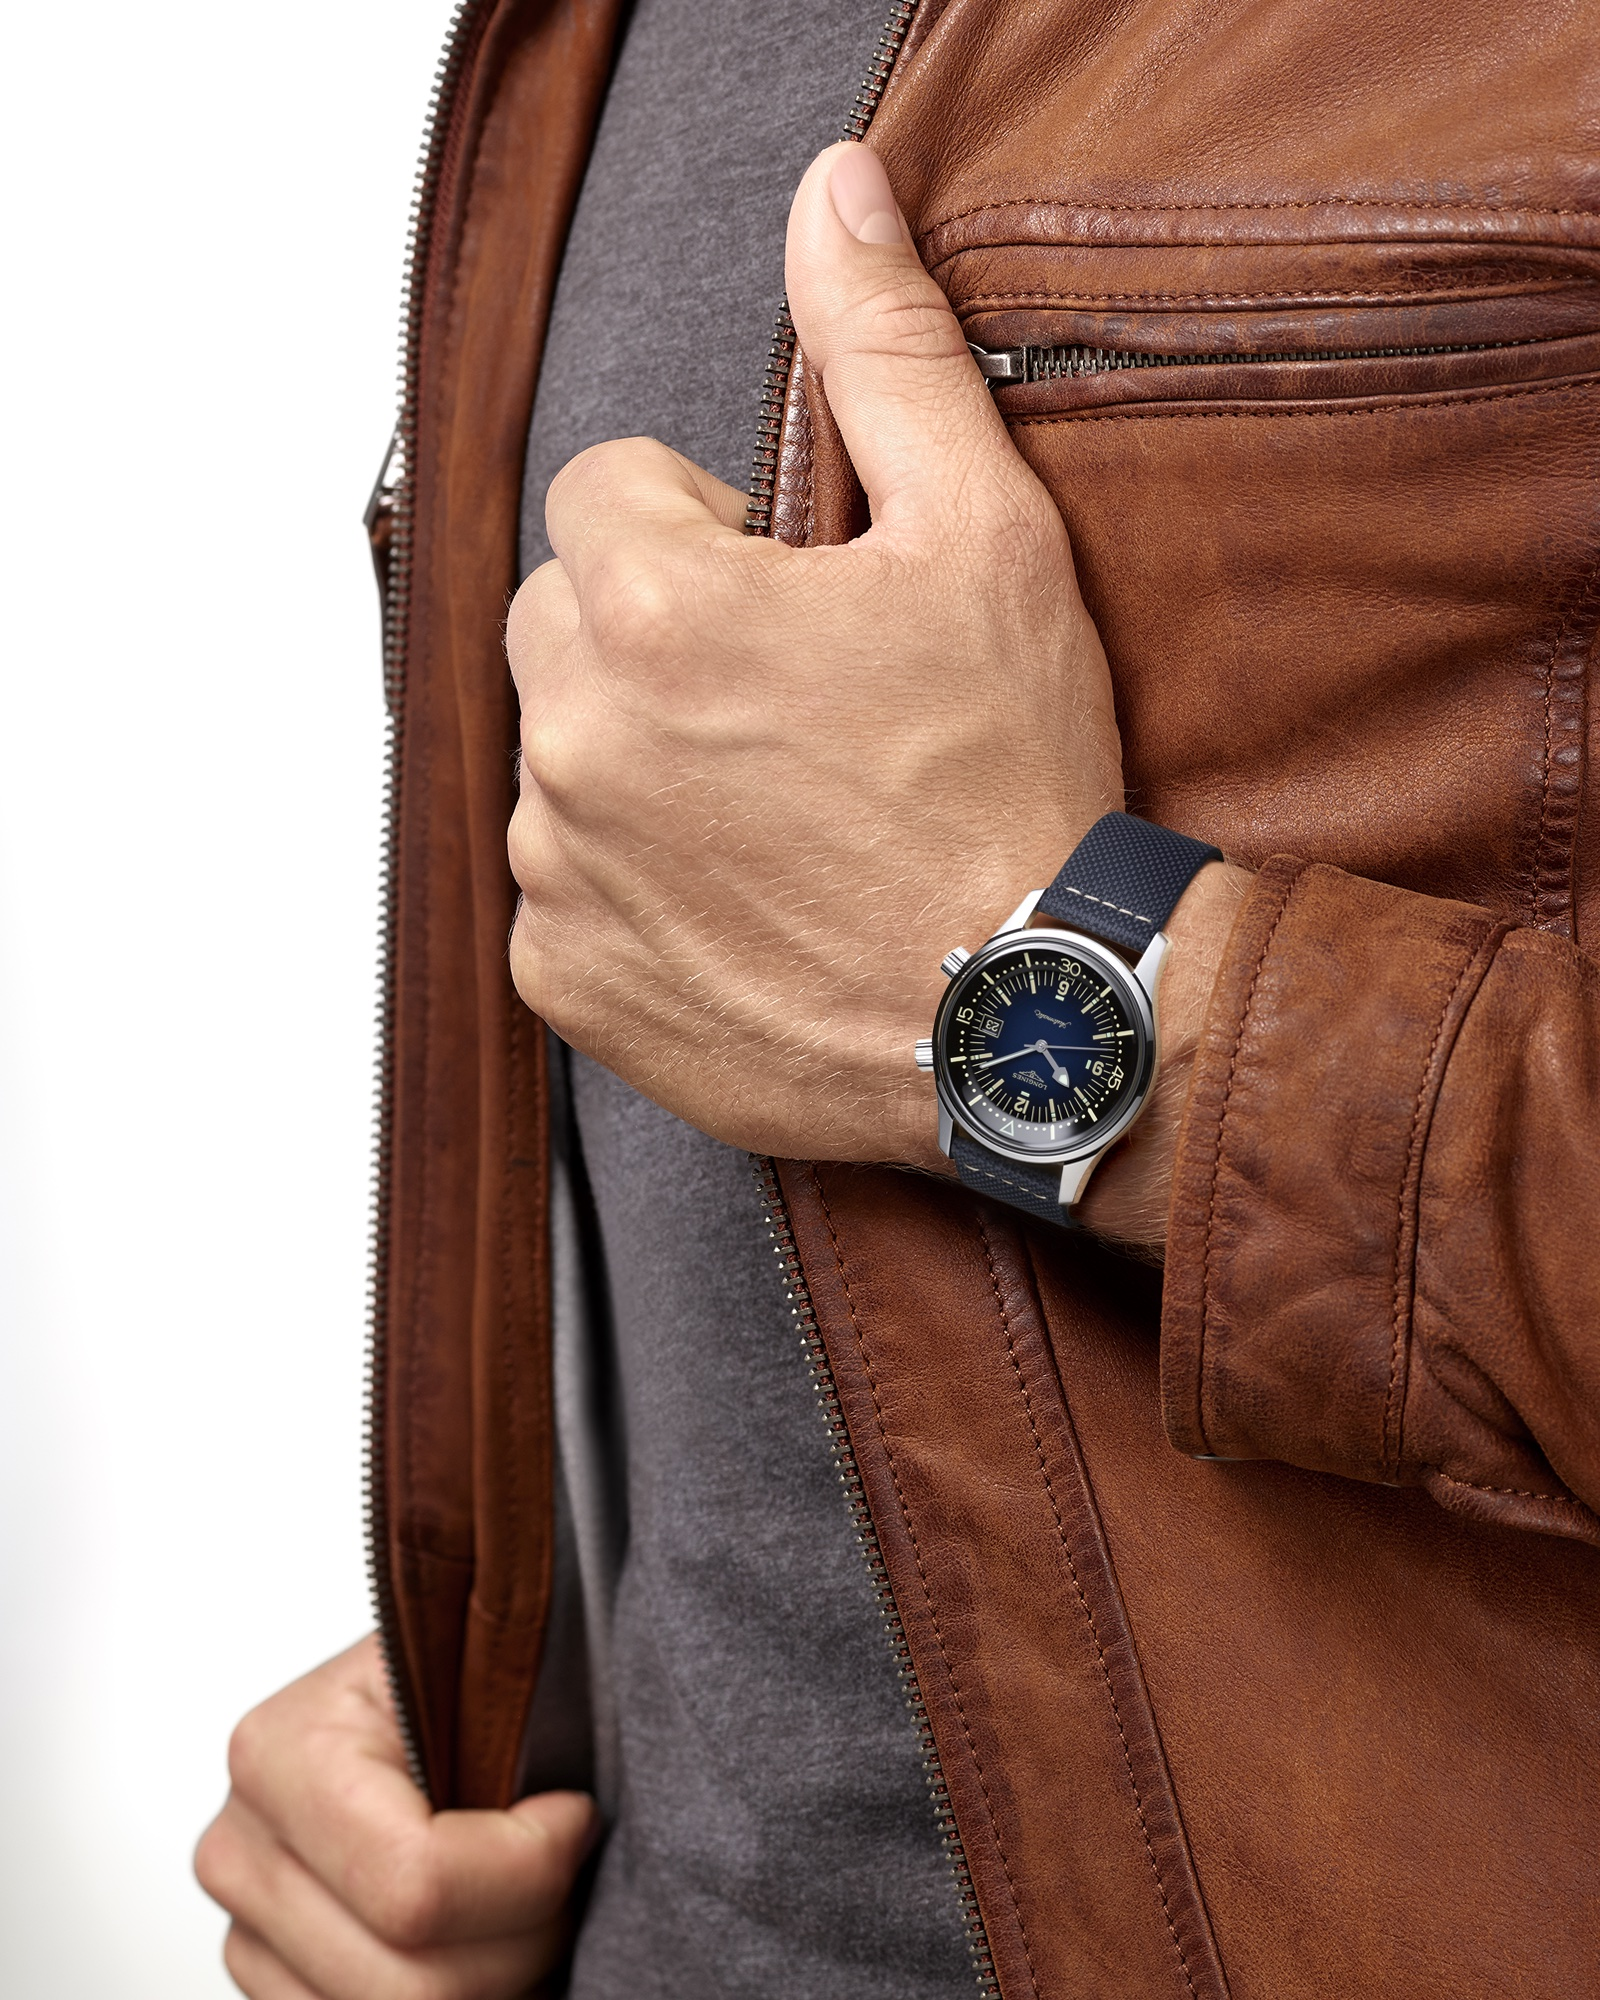 The Longines Legend Diver Watch Azul L3.774.4.90.2 Lifestyle Wristshot